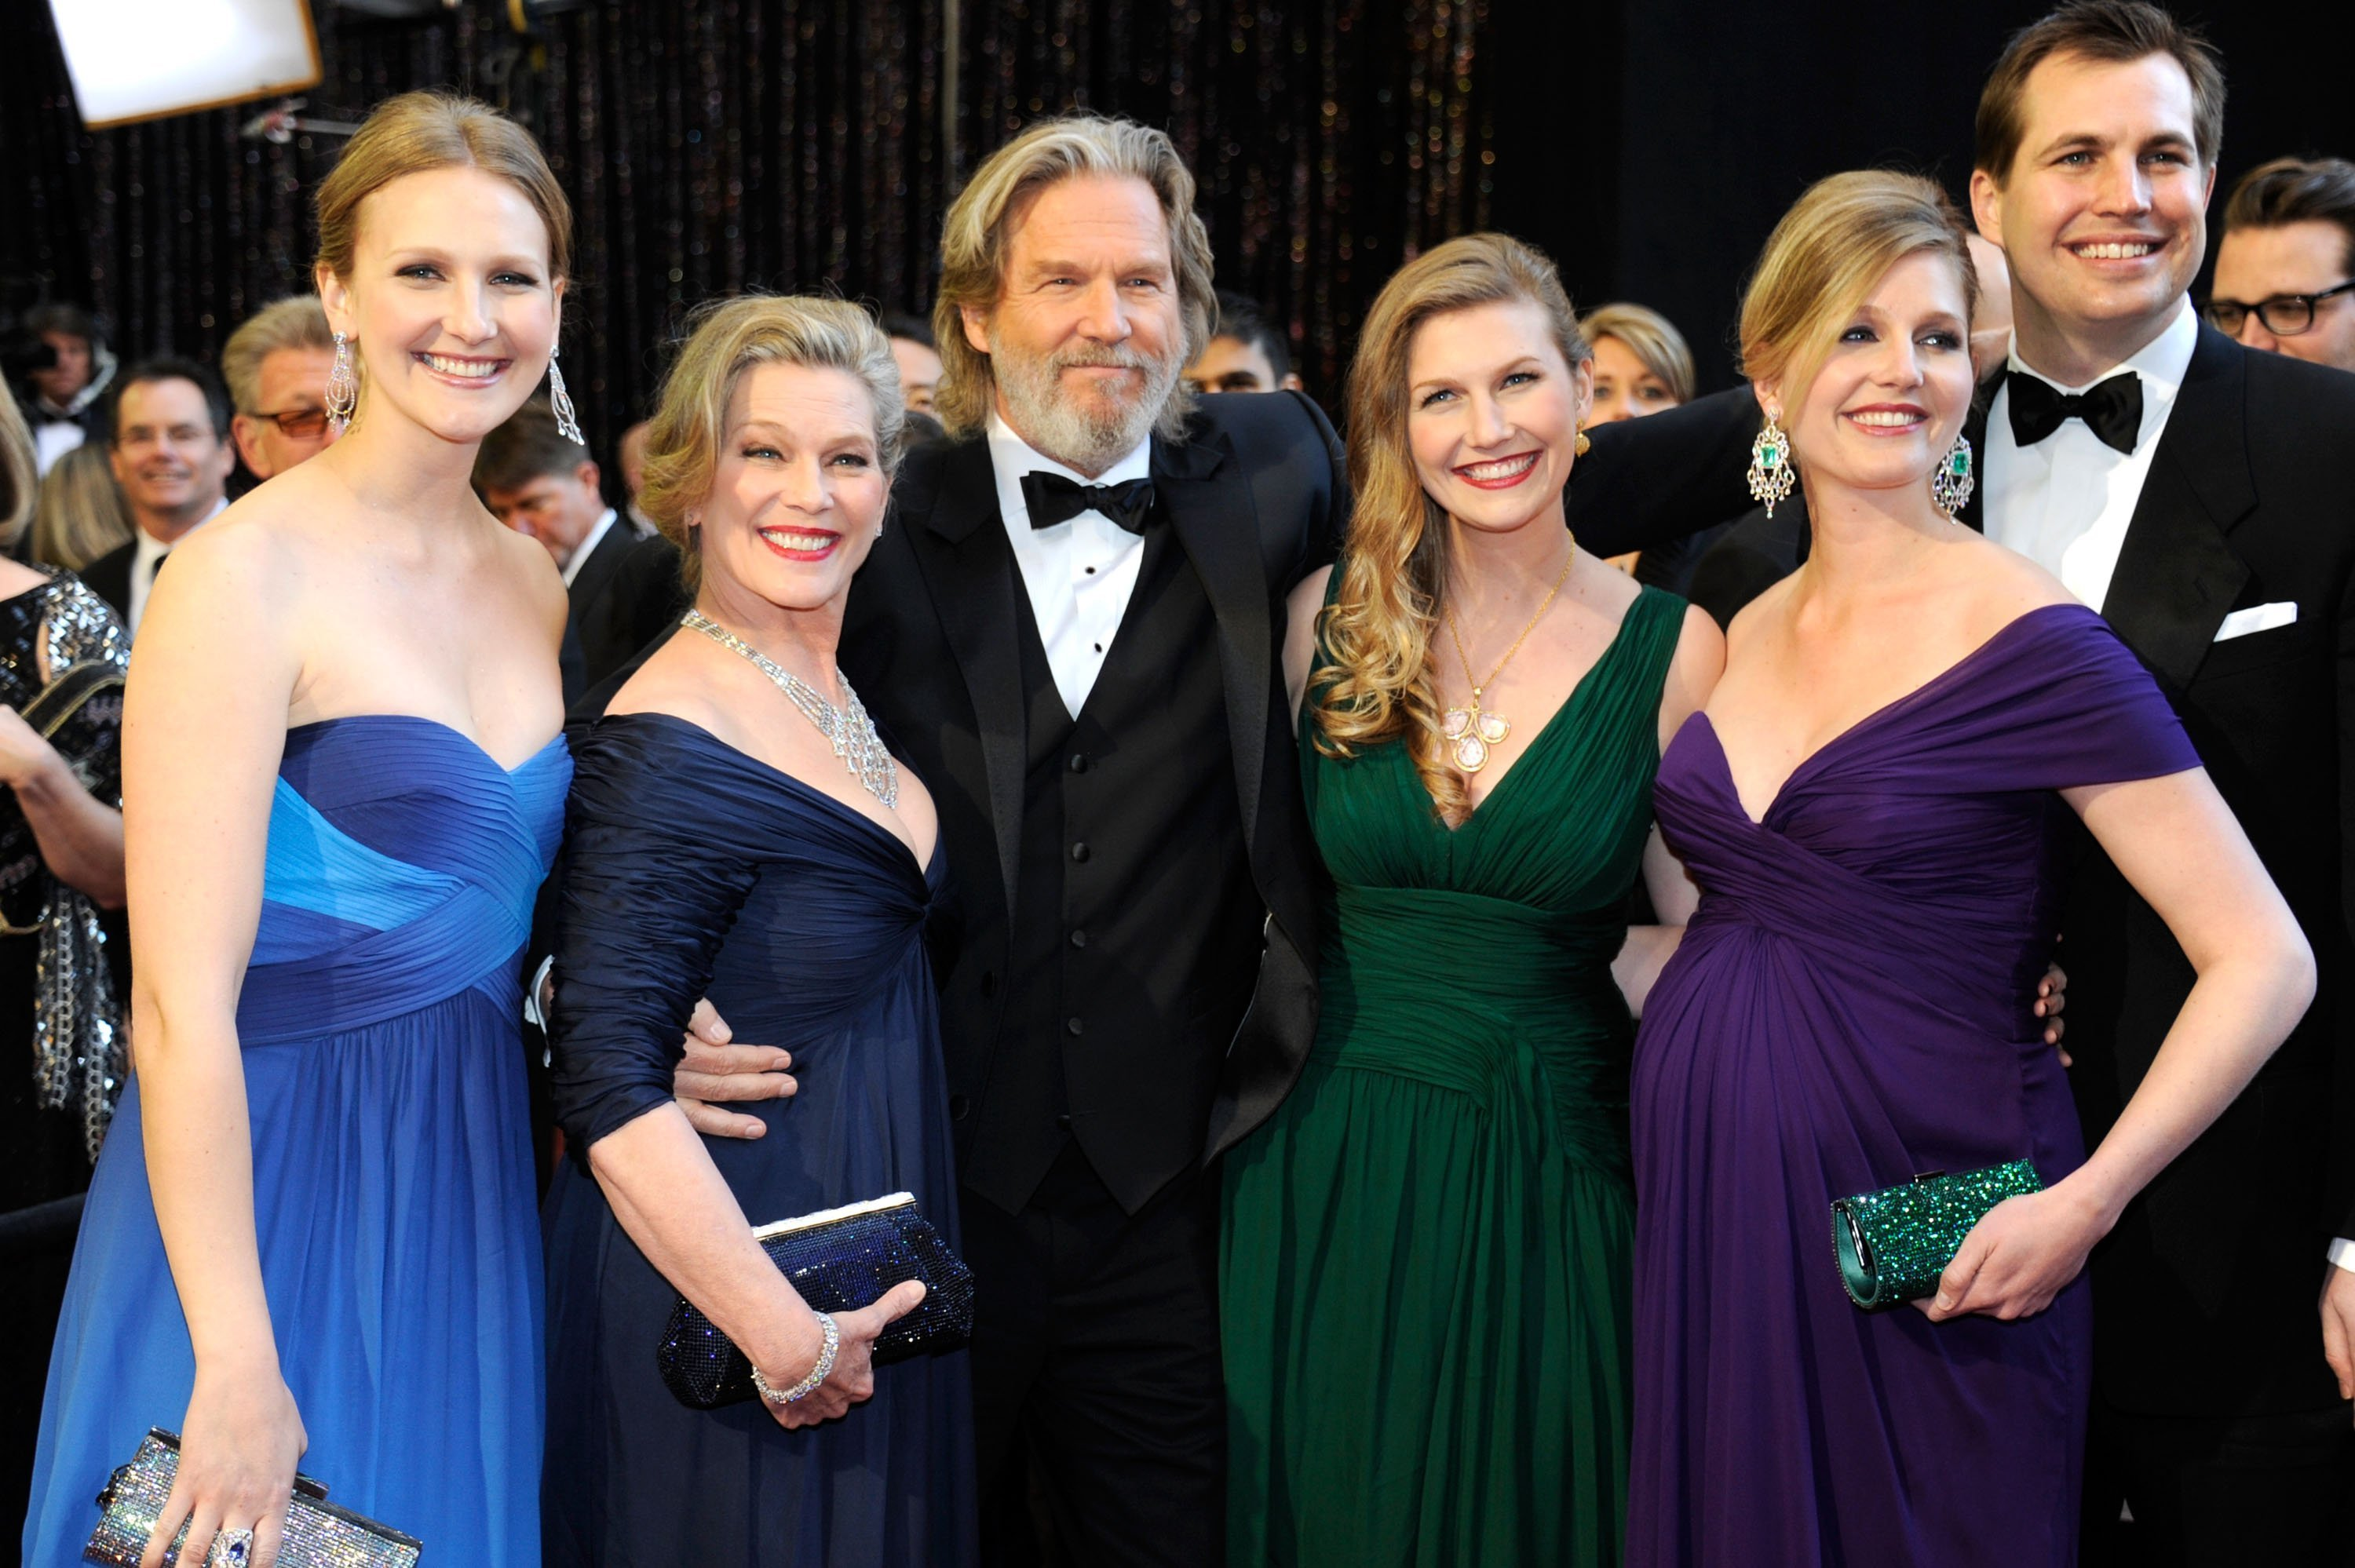 Jeff Bridges, wife Susan Bridges and family arrive at the 83rd Annual Academy Awards on February 27, 2011. | Source: Getty Images